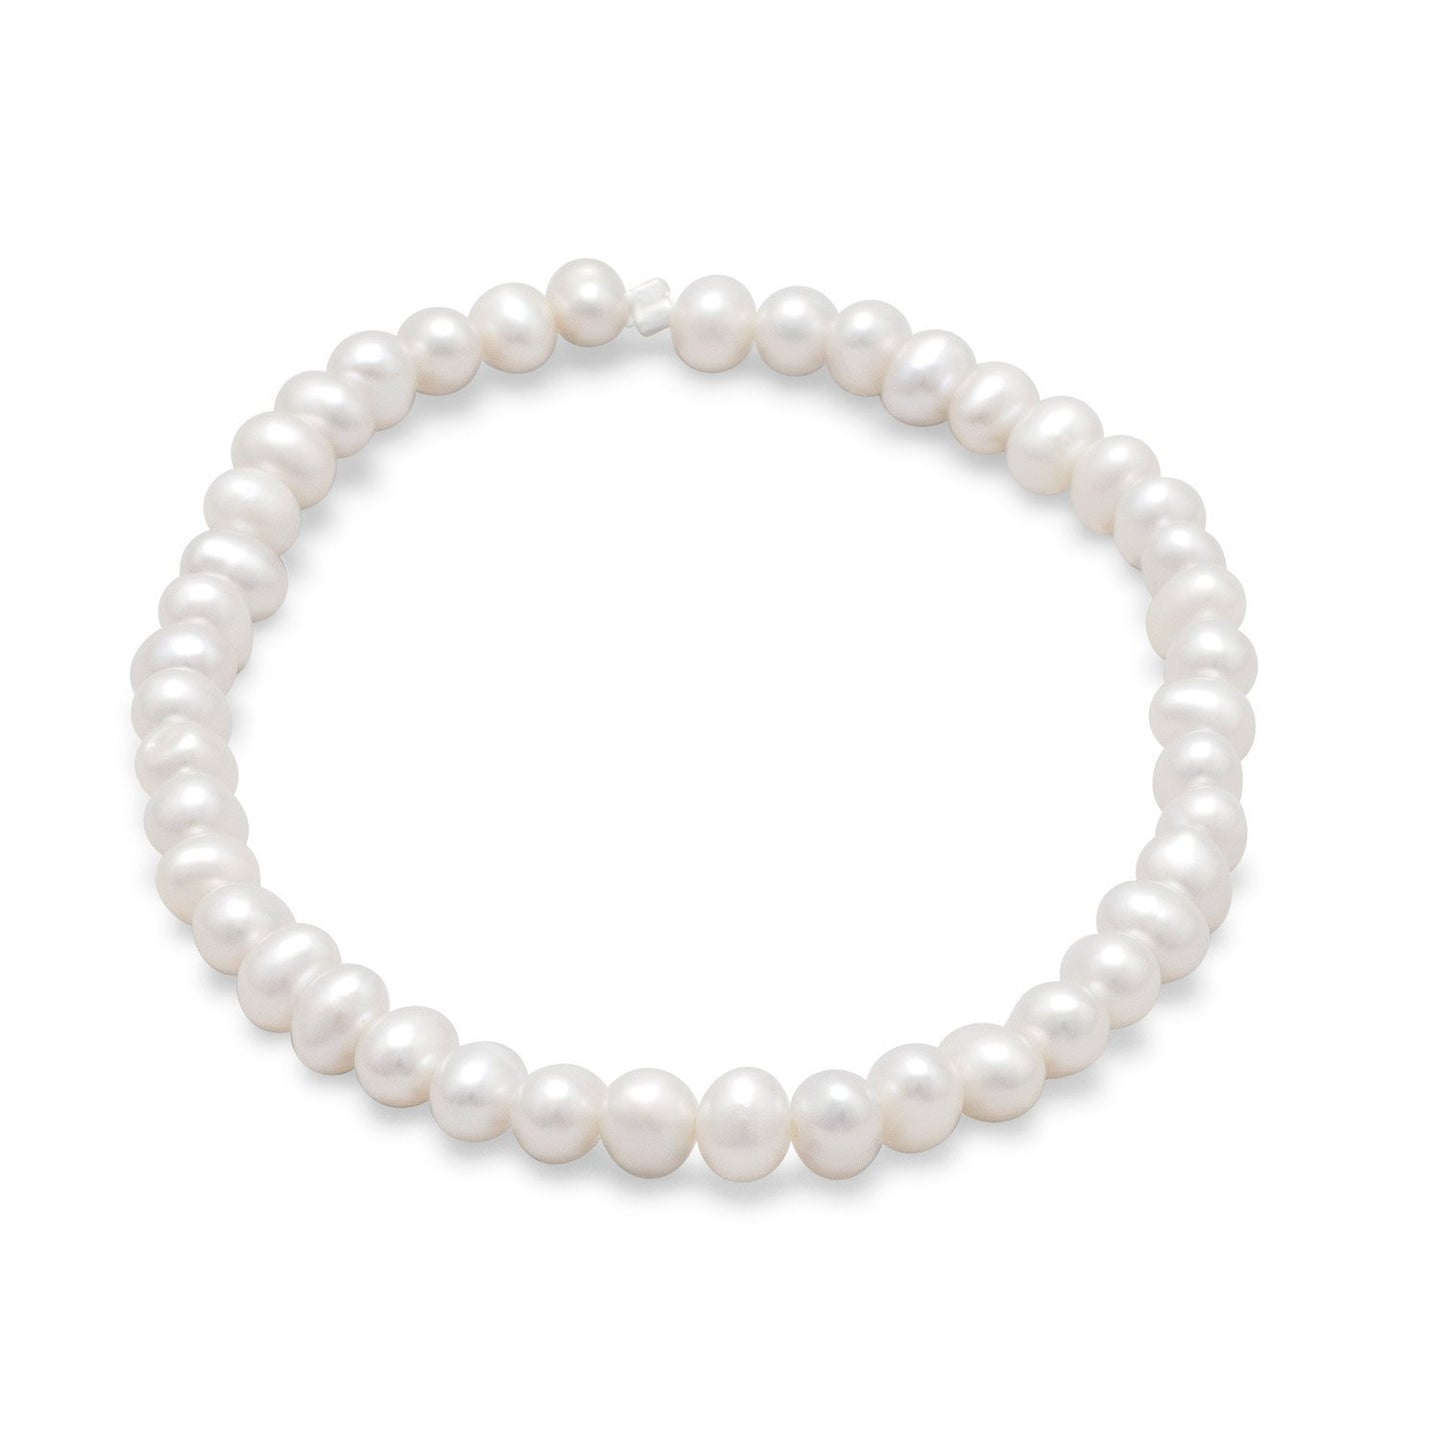 White Cultured Freshwater Pearl Stretch Bracelet 4-5mm at 3 Barn Swallows, $35